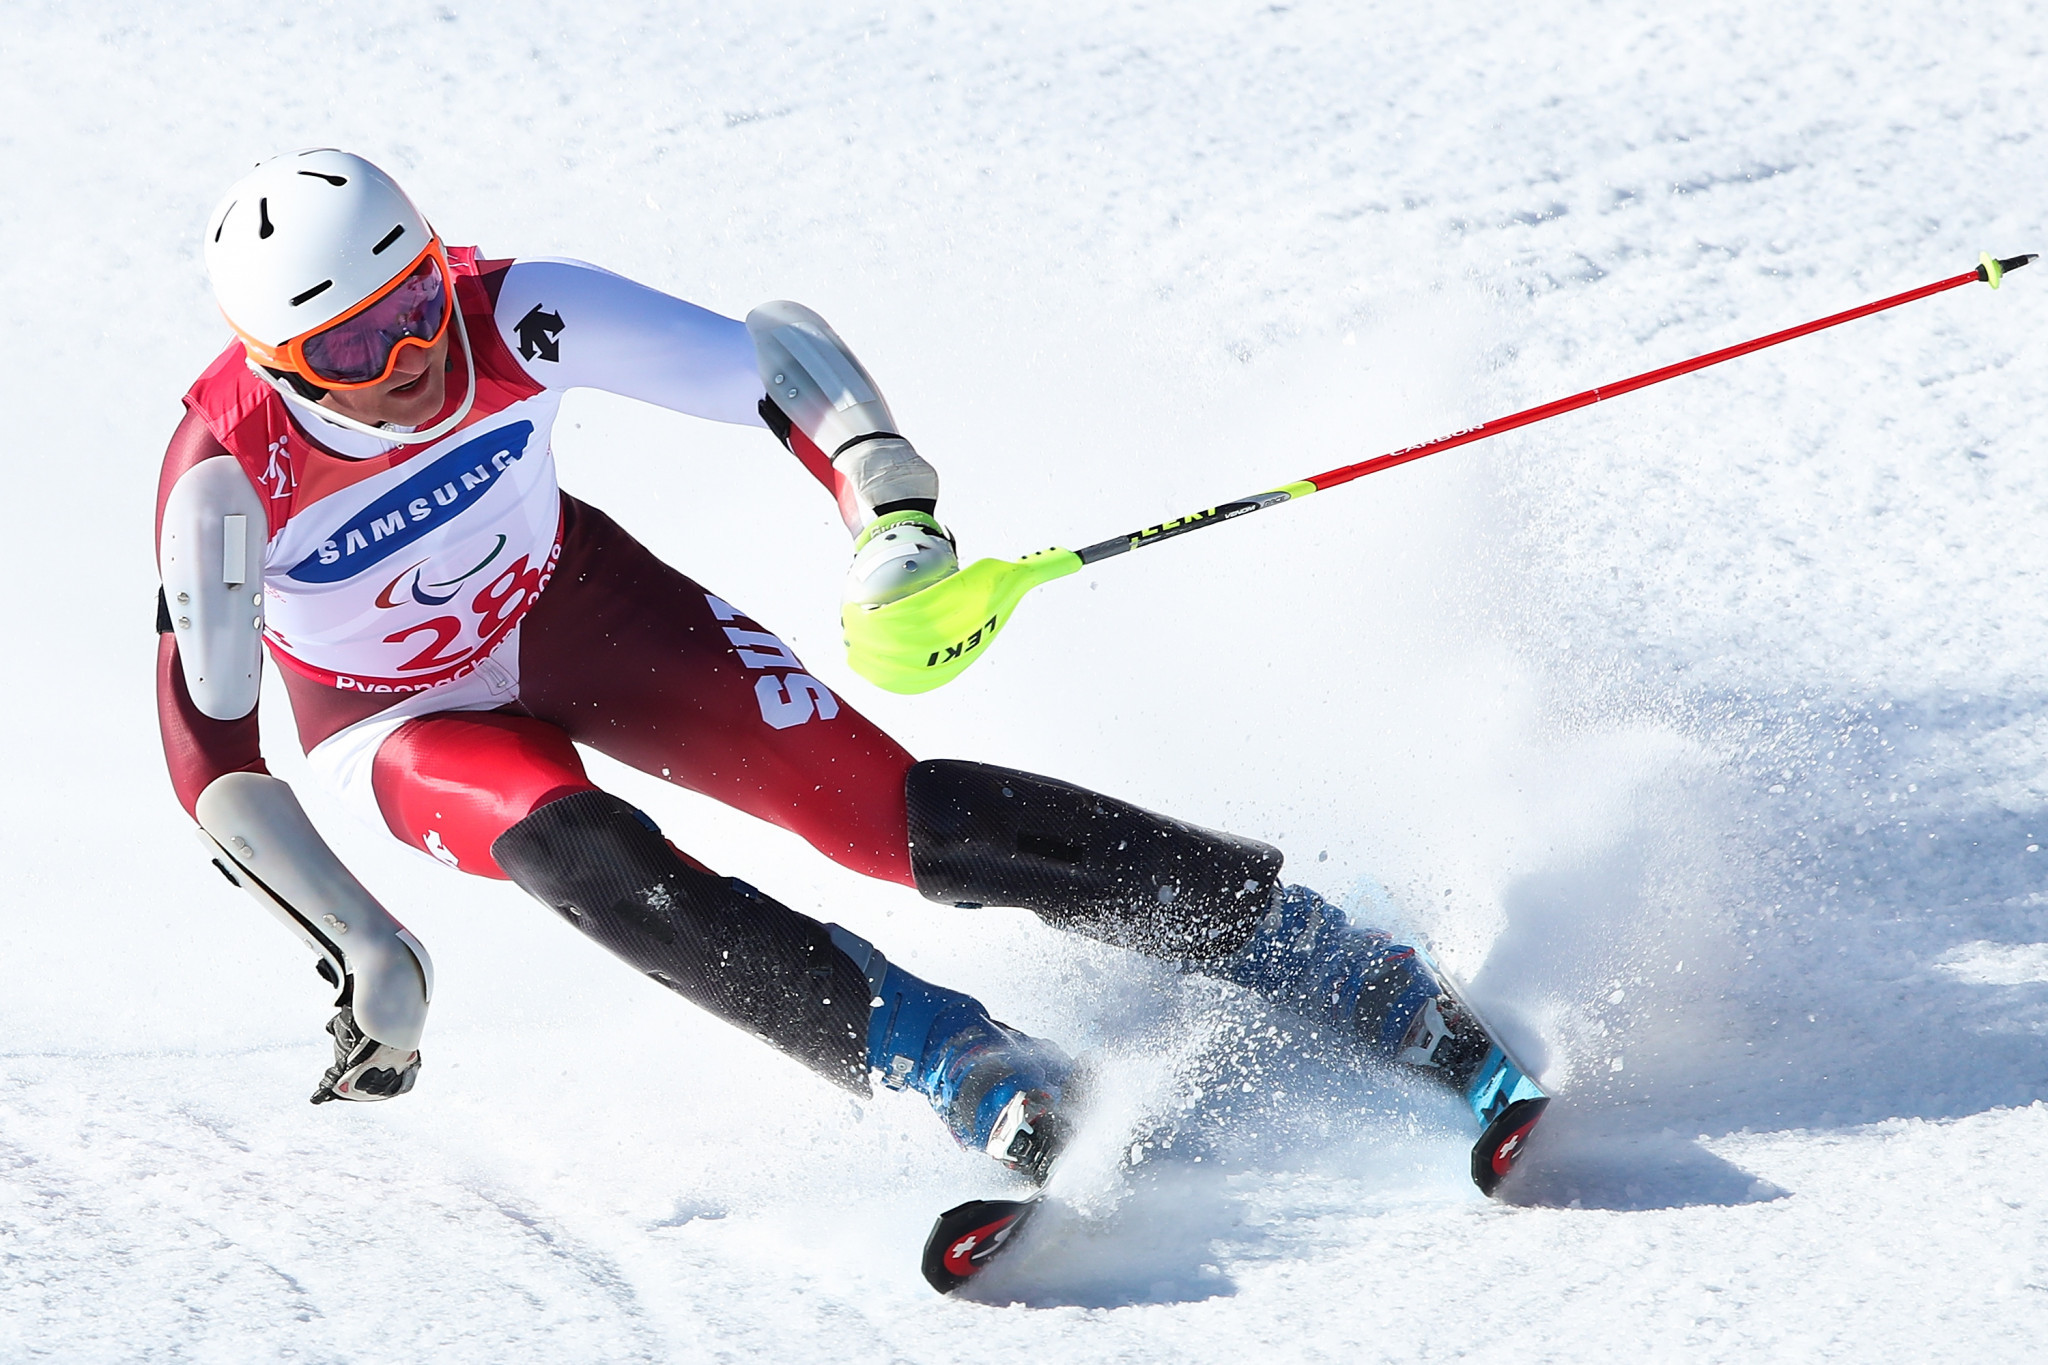 Hosts win two golds in super combined competition at World Para Alpine Skiing Europa Cup Finals